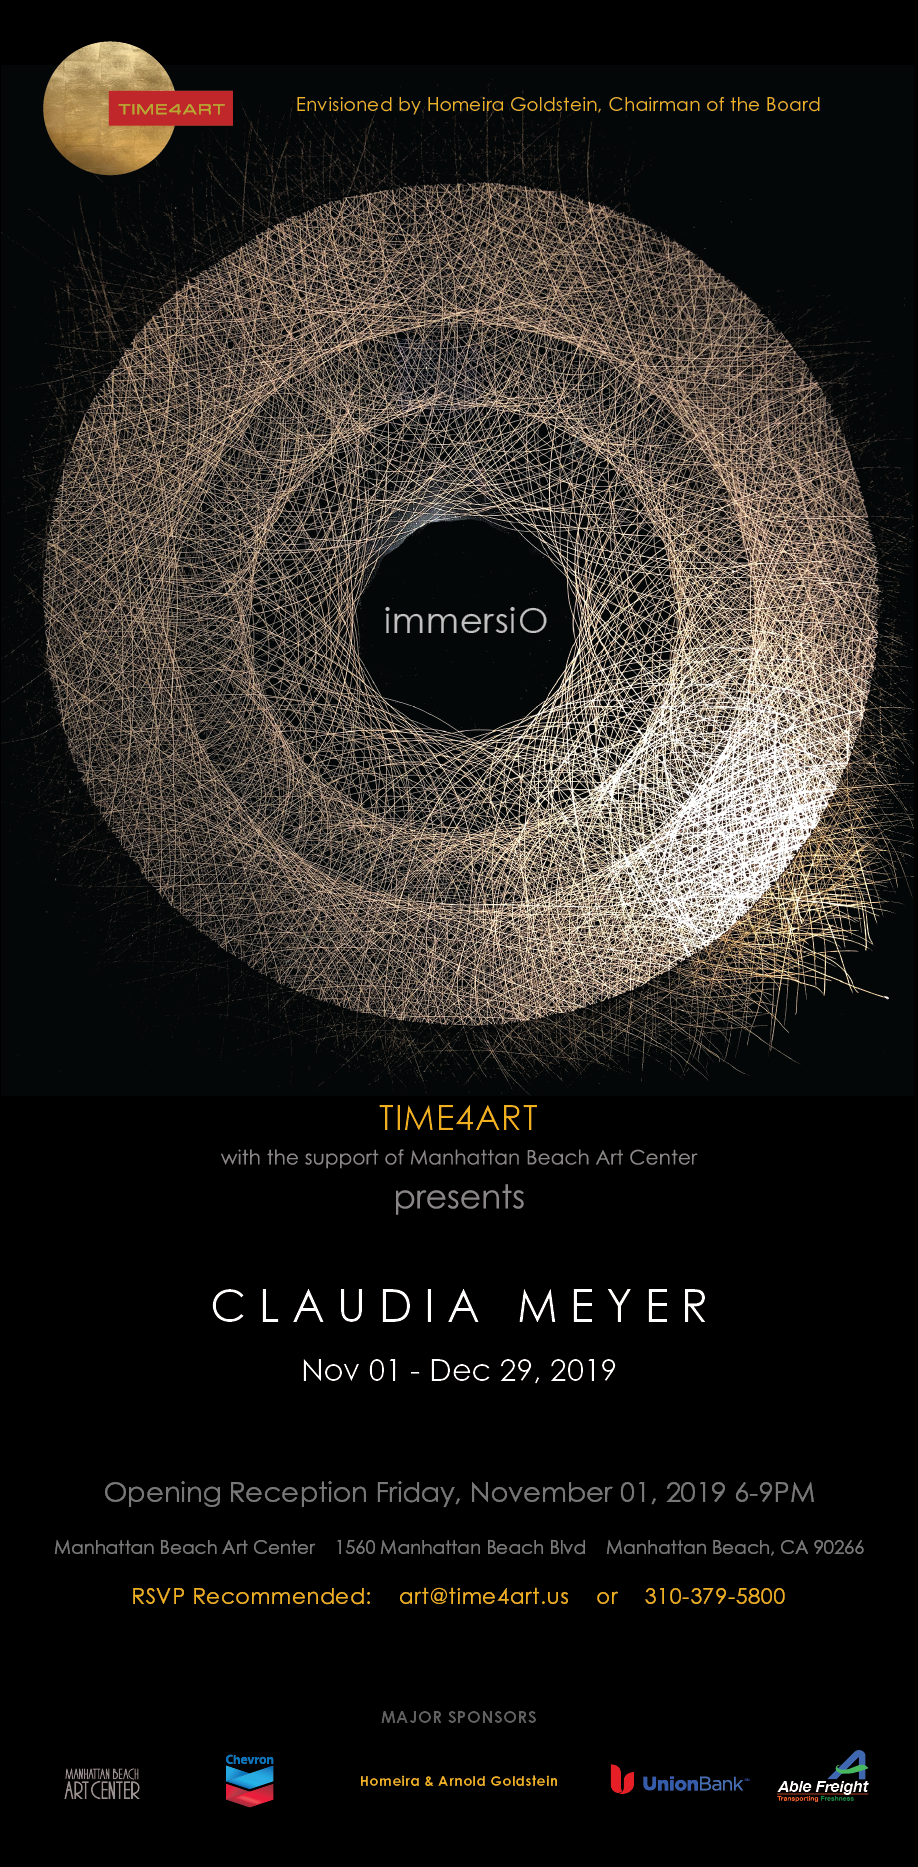 TIME4ART-immersiO-Invite-03Oct19-all-black-03Oct19.png